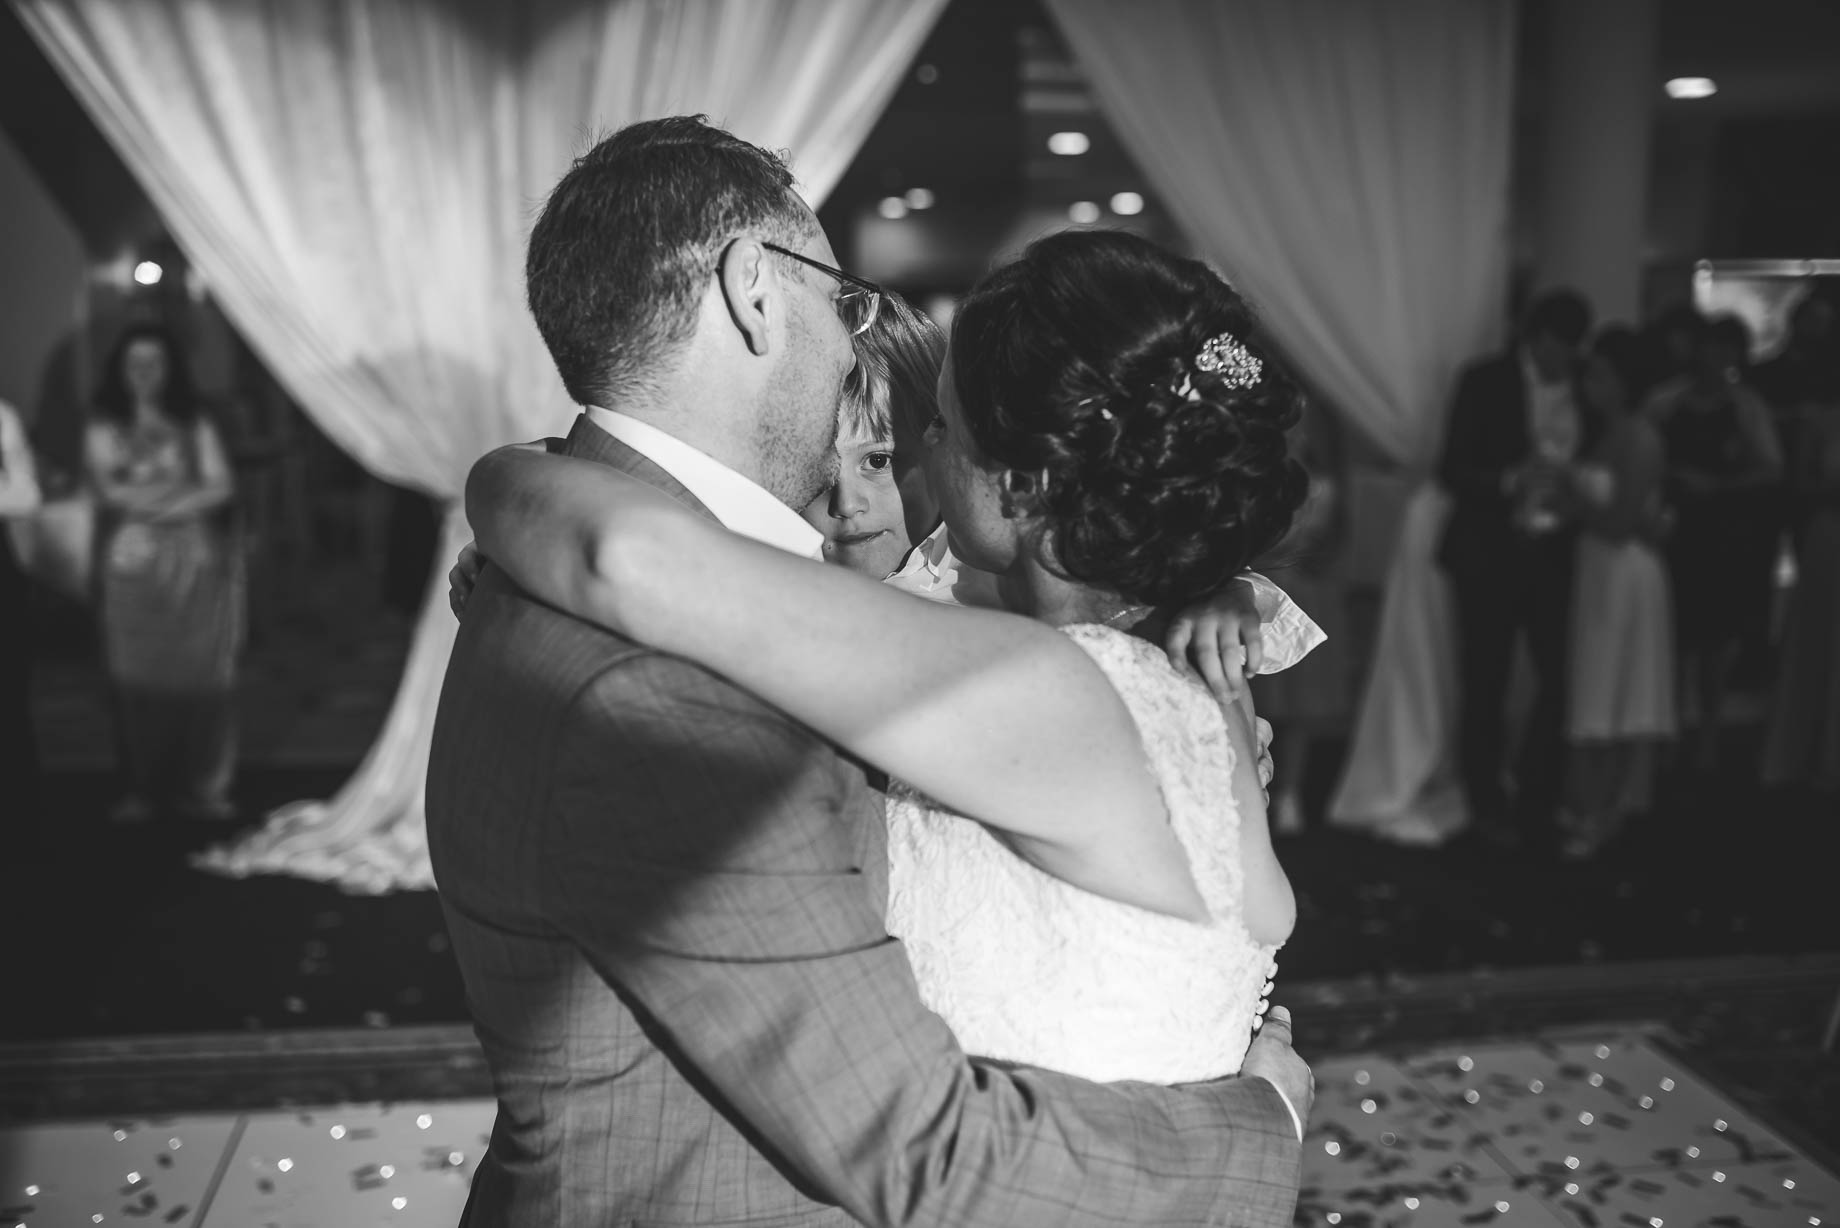 Luton Hoo wedding photography by Guy Collier Photography - Lauren and Gem (178 of 178)